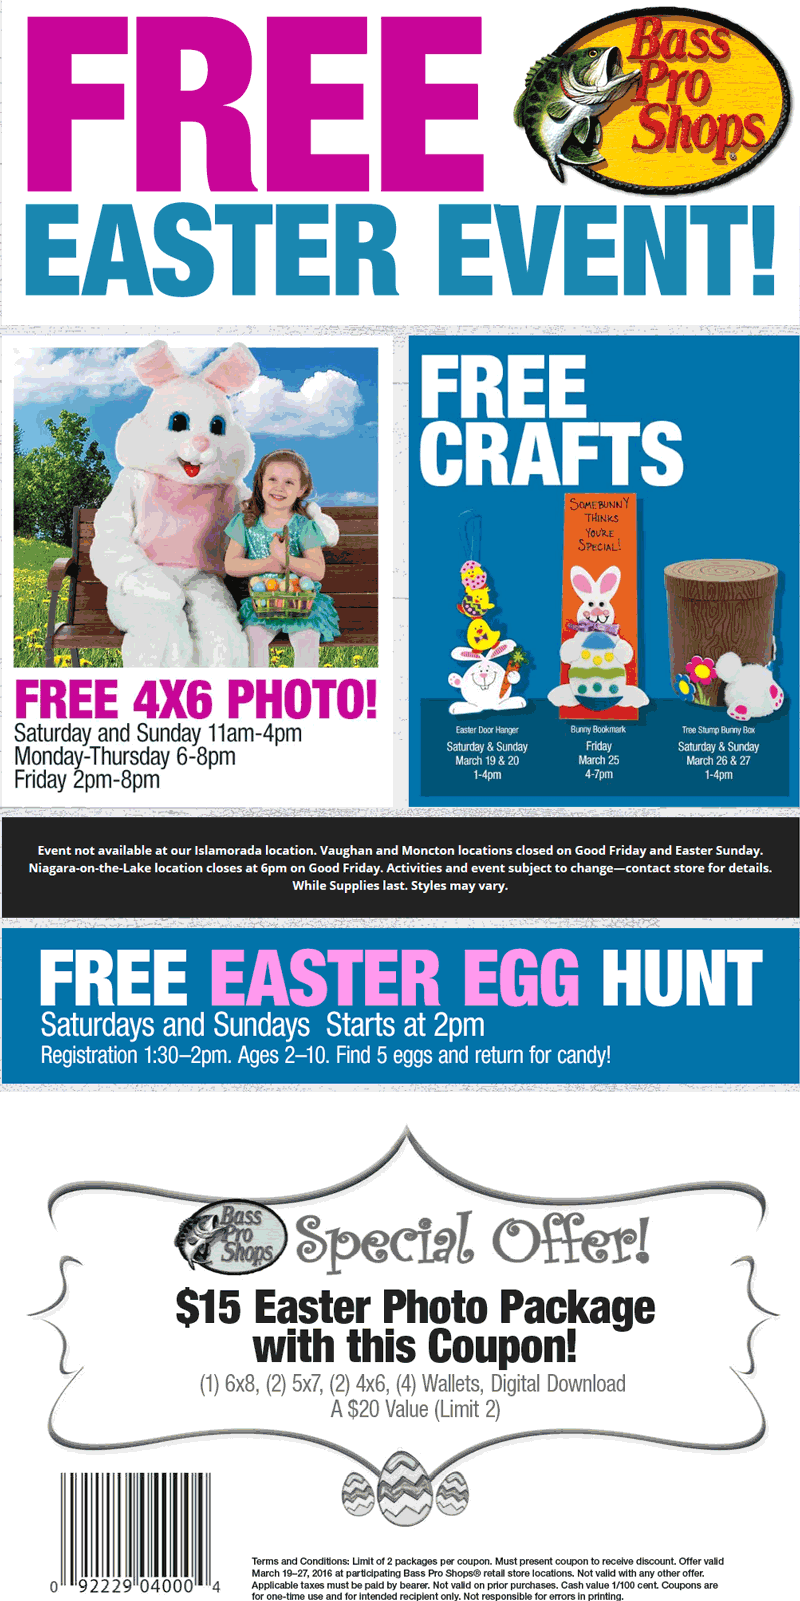 Bass Pro Shops Coupon July 2018 Free 4x6 photo with Easter bunny & more at Bass Pro Shops